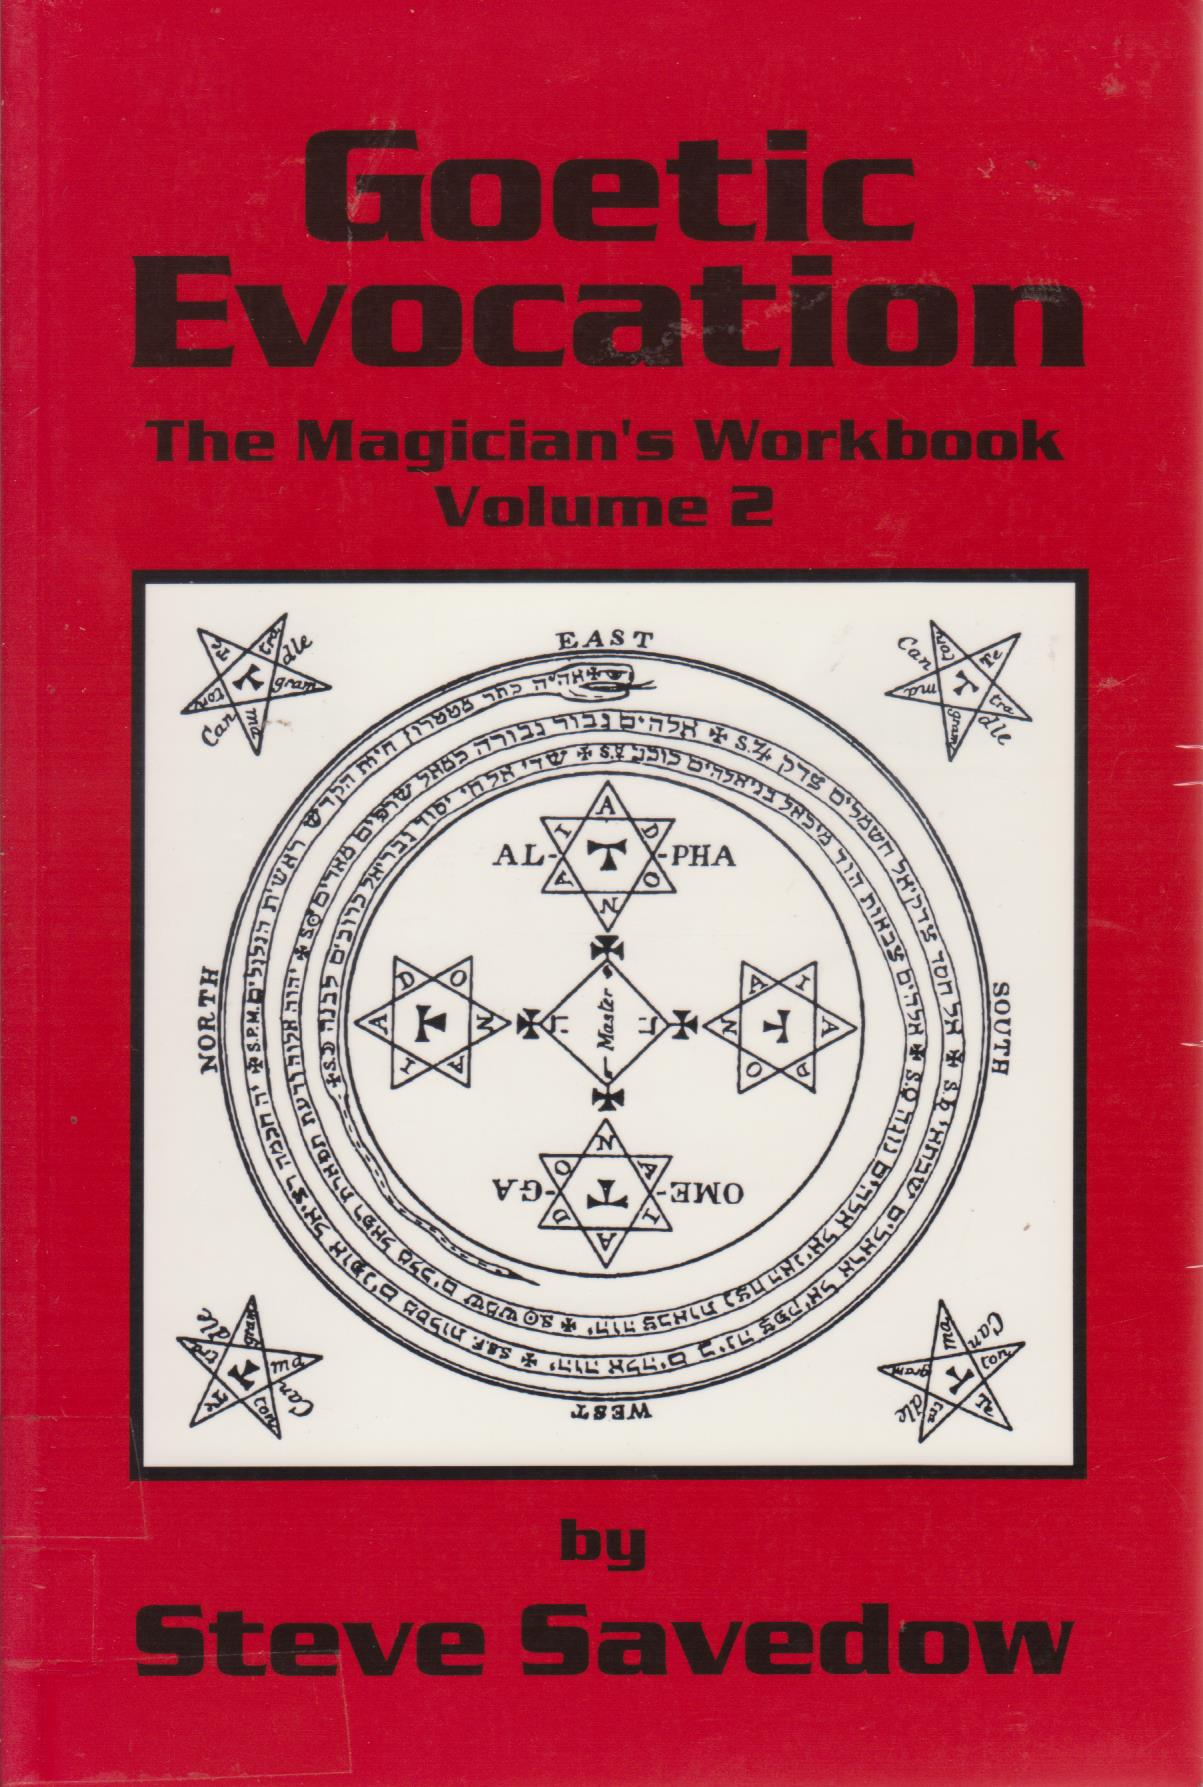 cover image of Goetic Evocation, The Magician's Workbook Volume 2 for sale in New Zealand